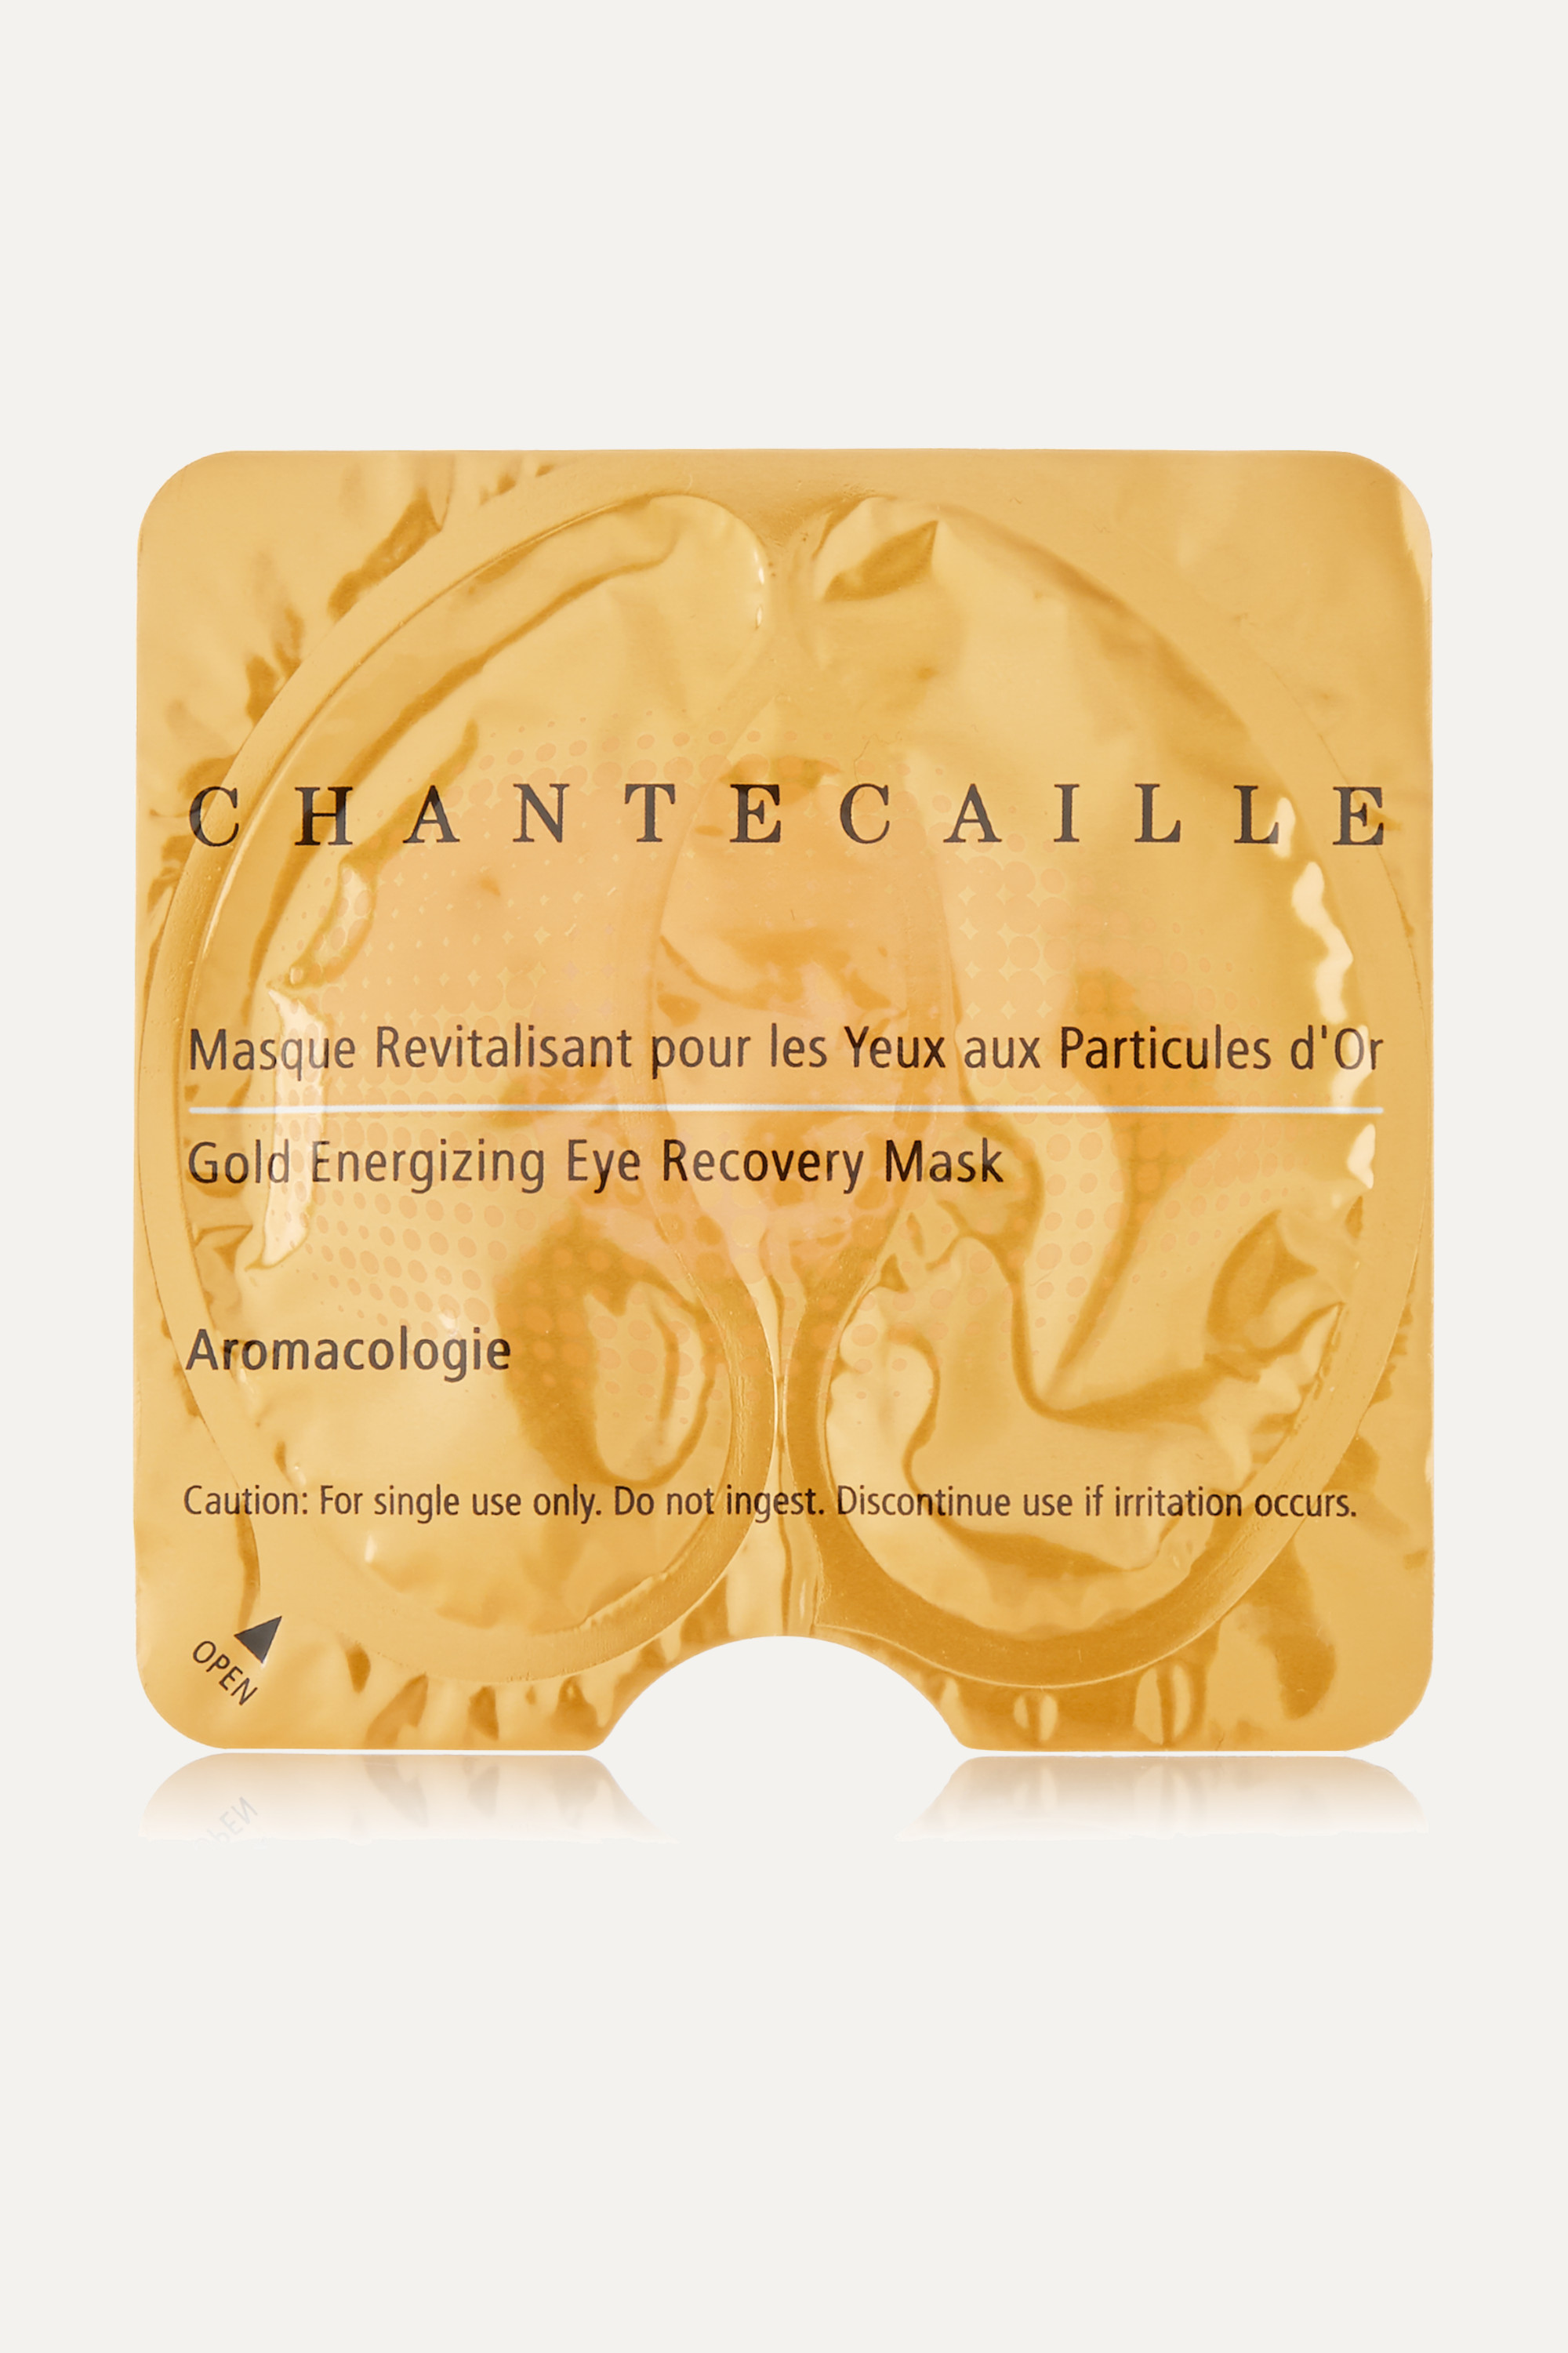 CHANTECAILLE Gold Energizing Eye Recovery Mask x 8